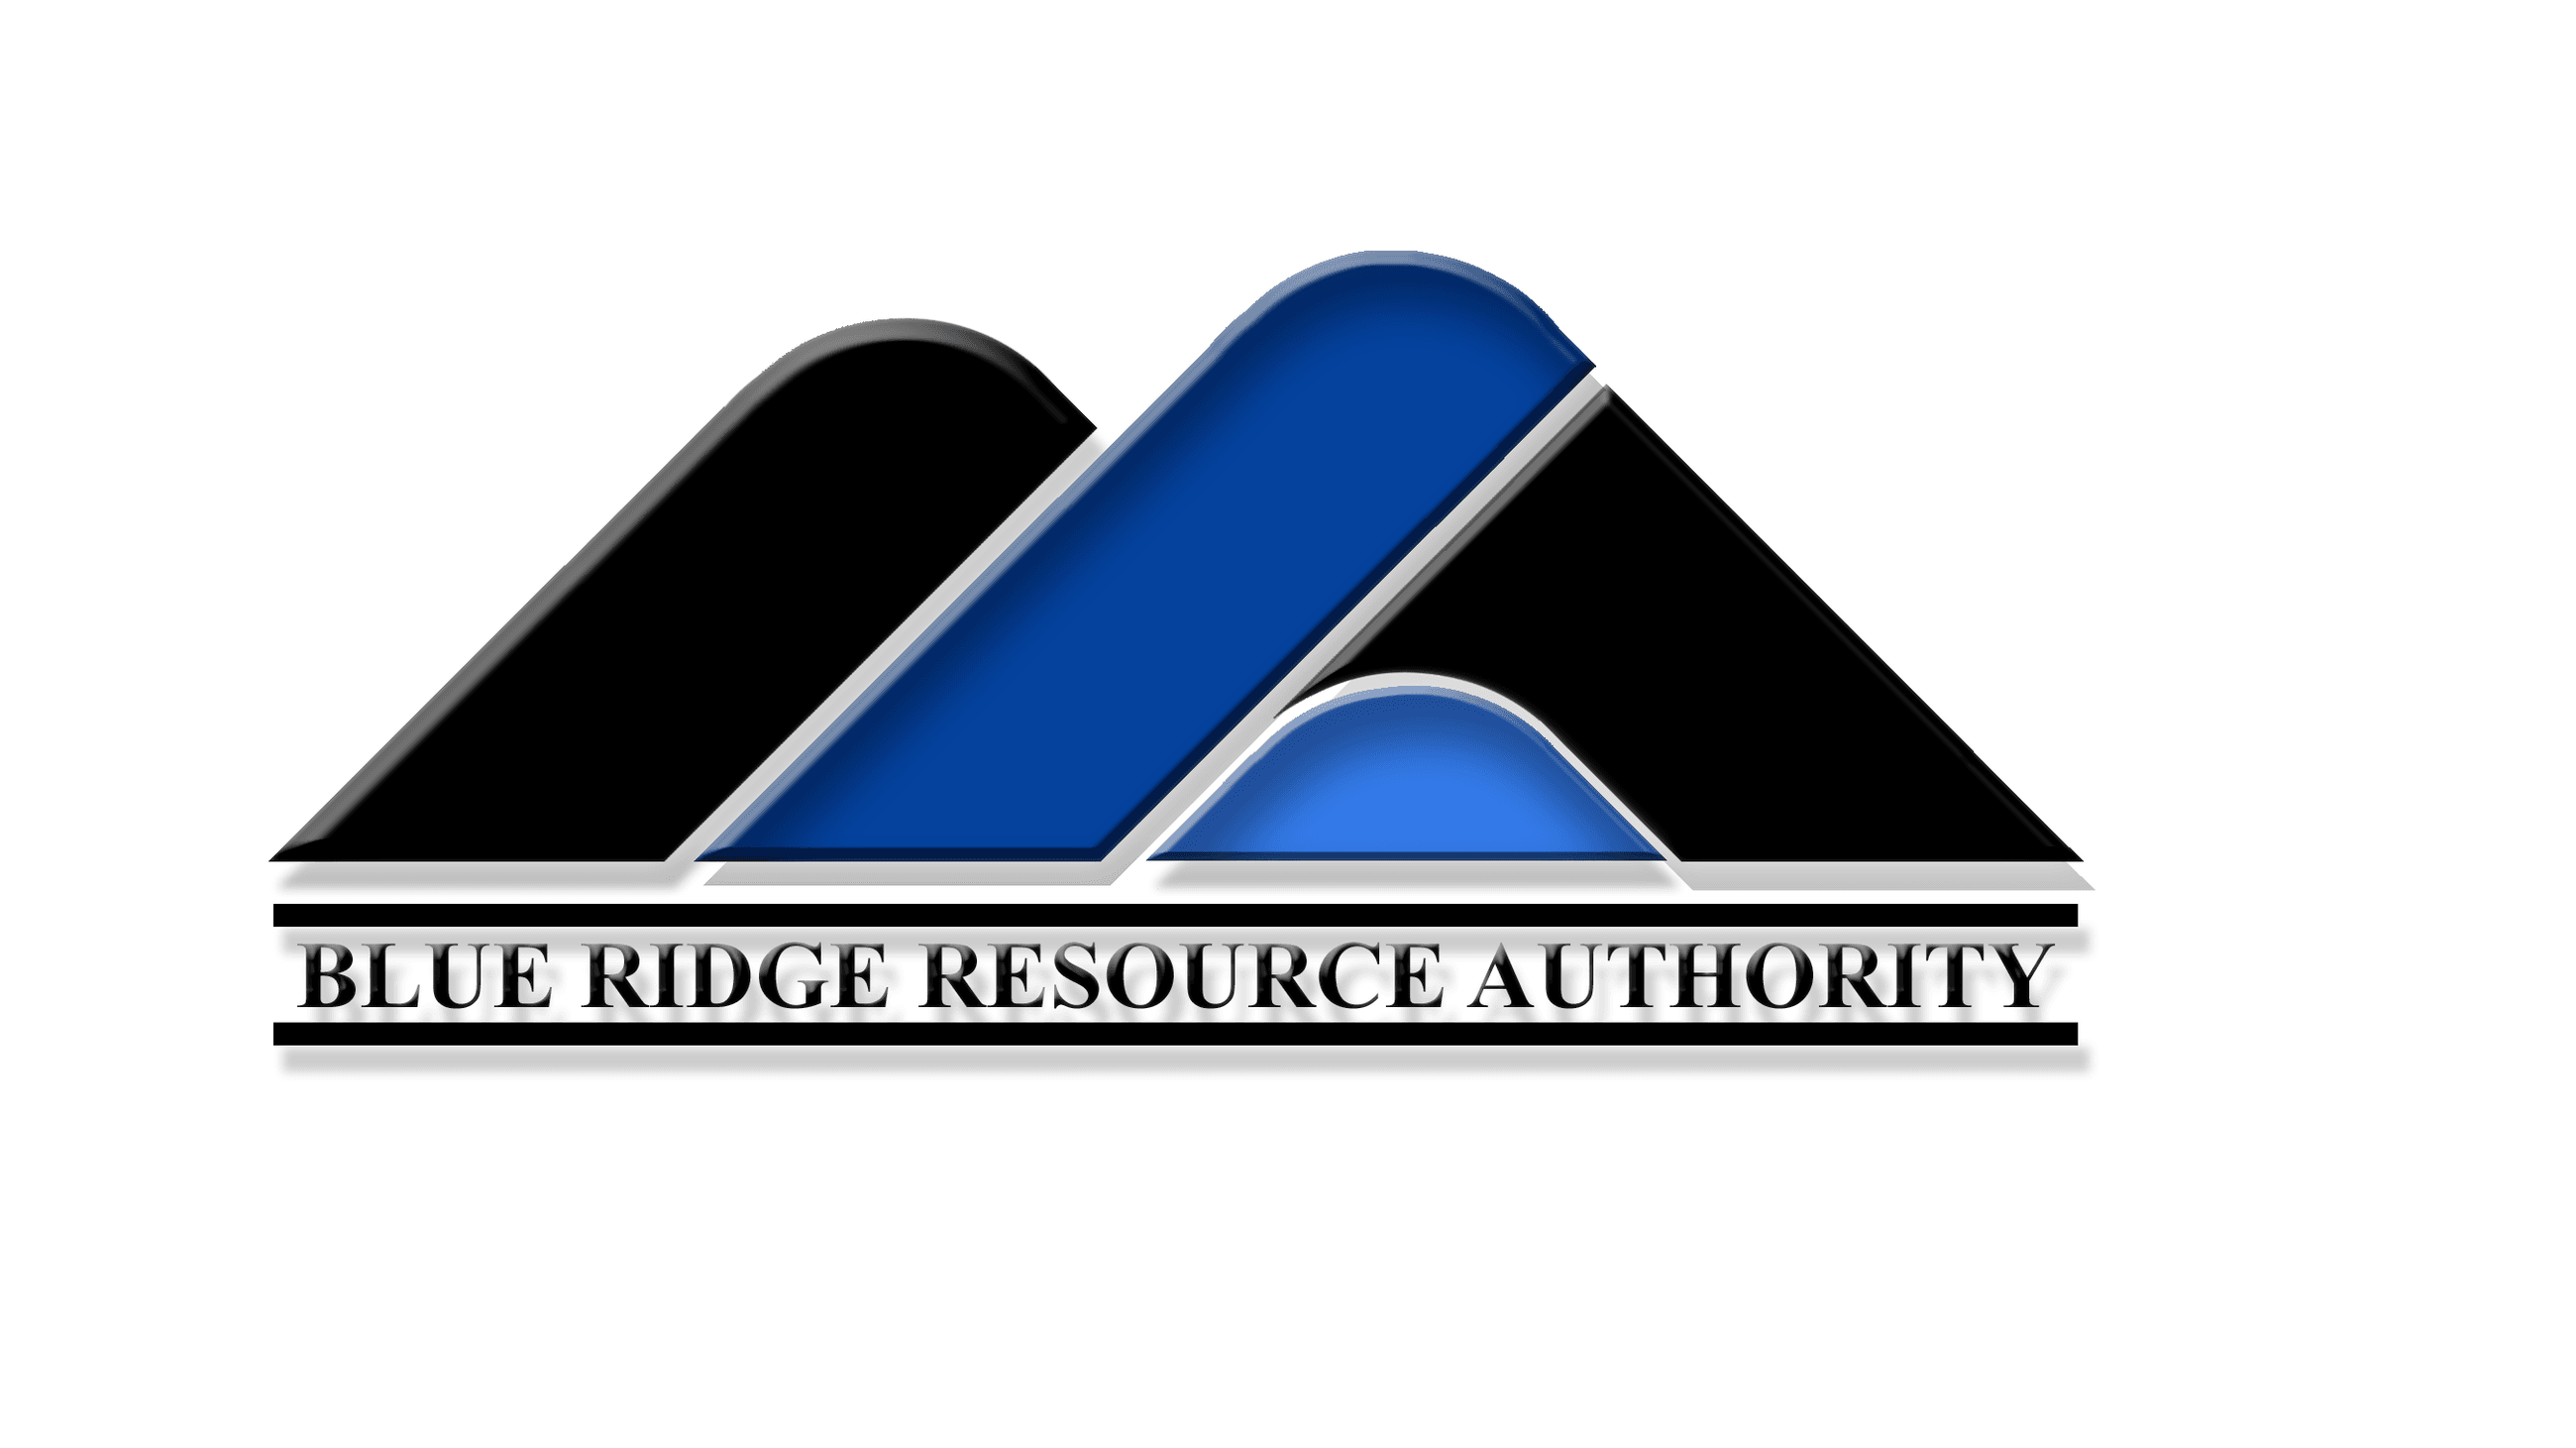 LOGO5-1 Blue Ridge Resource